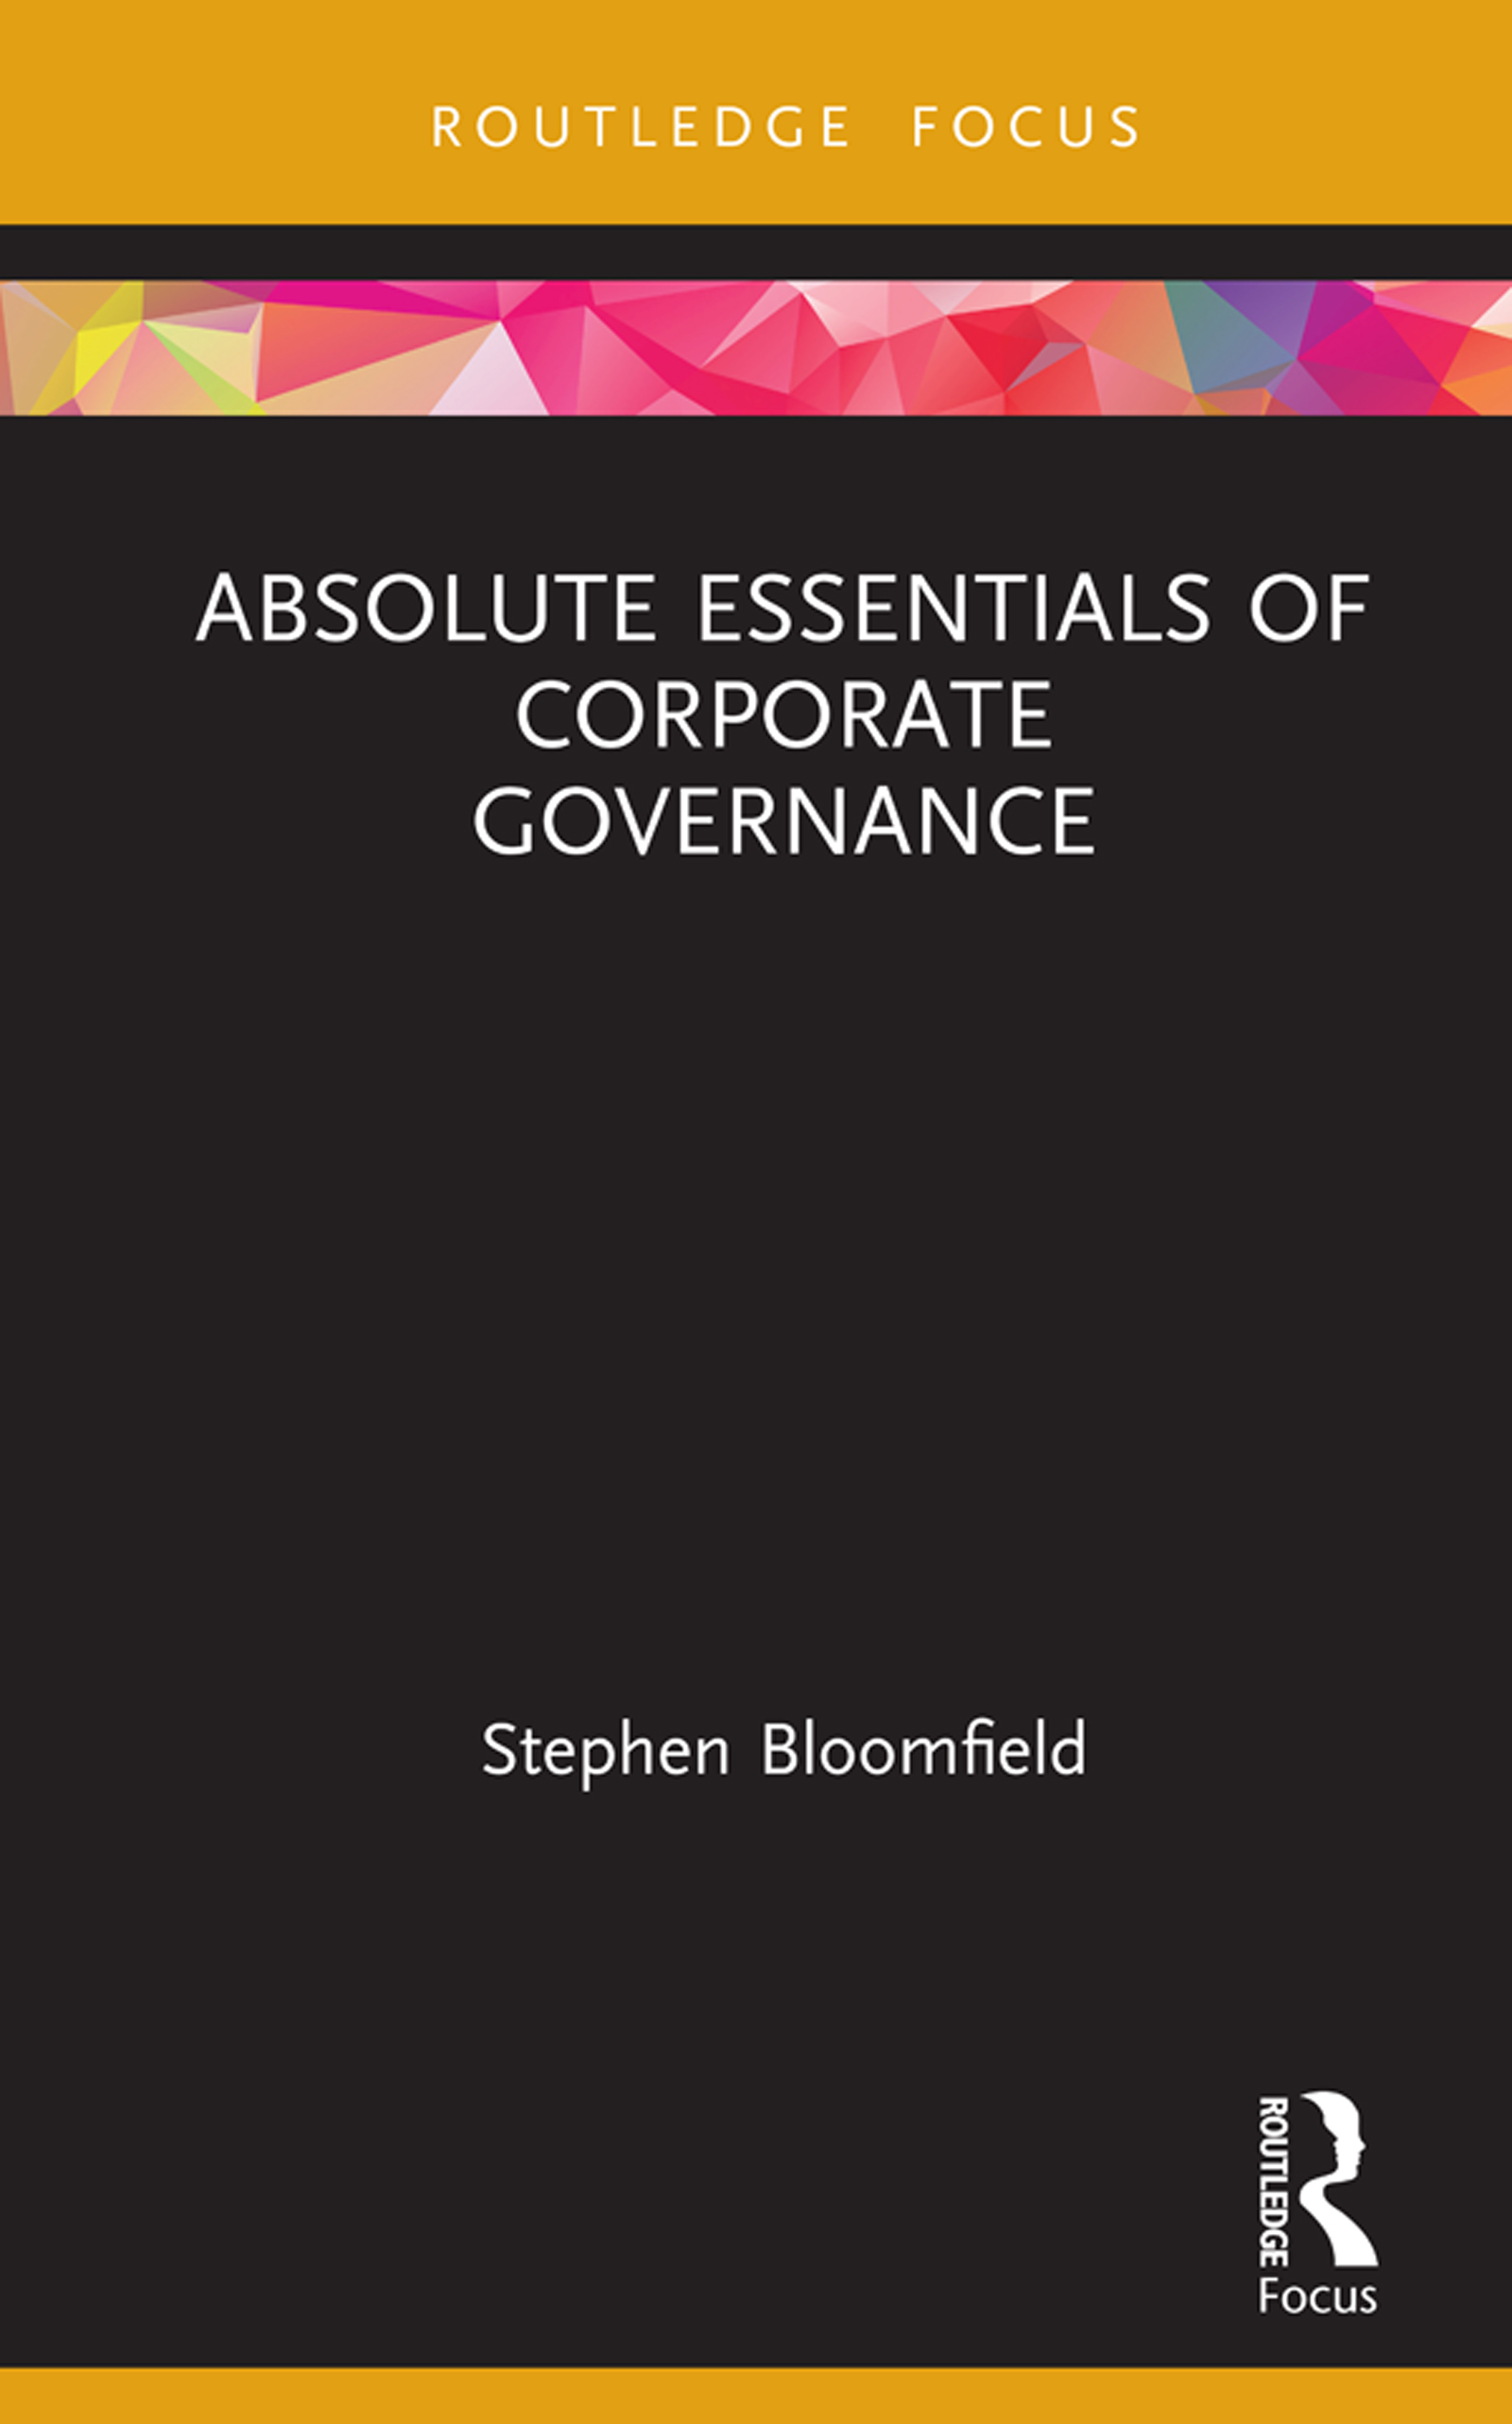 A brief history of corporate governance